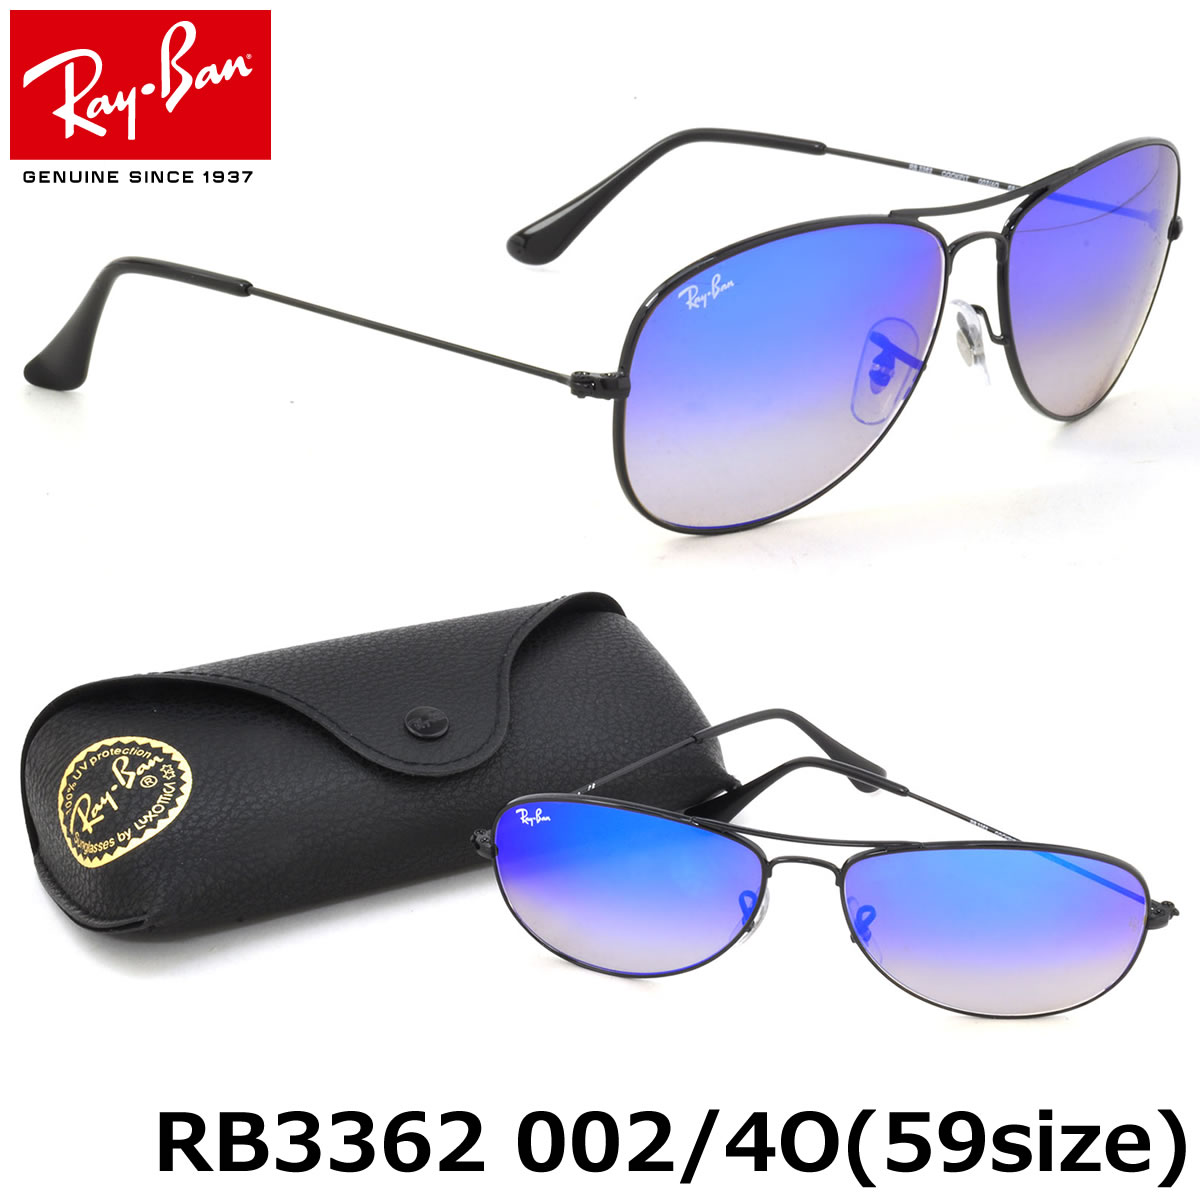 Ray Ban Sunglasses One Day Sale 2017